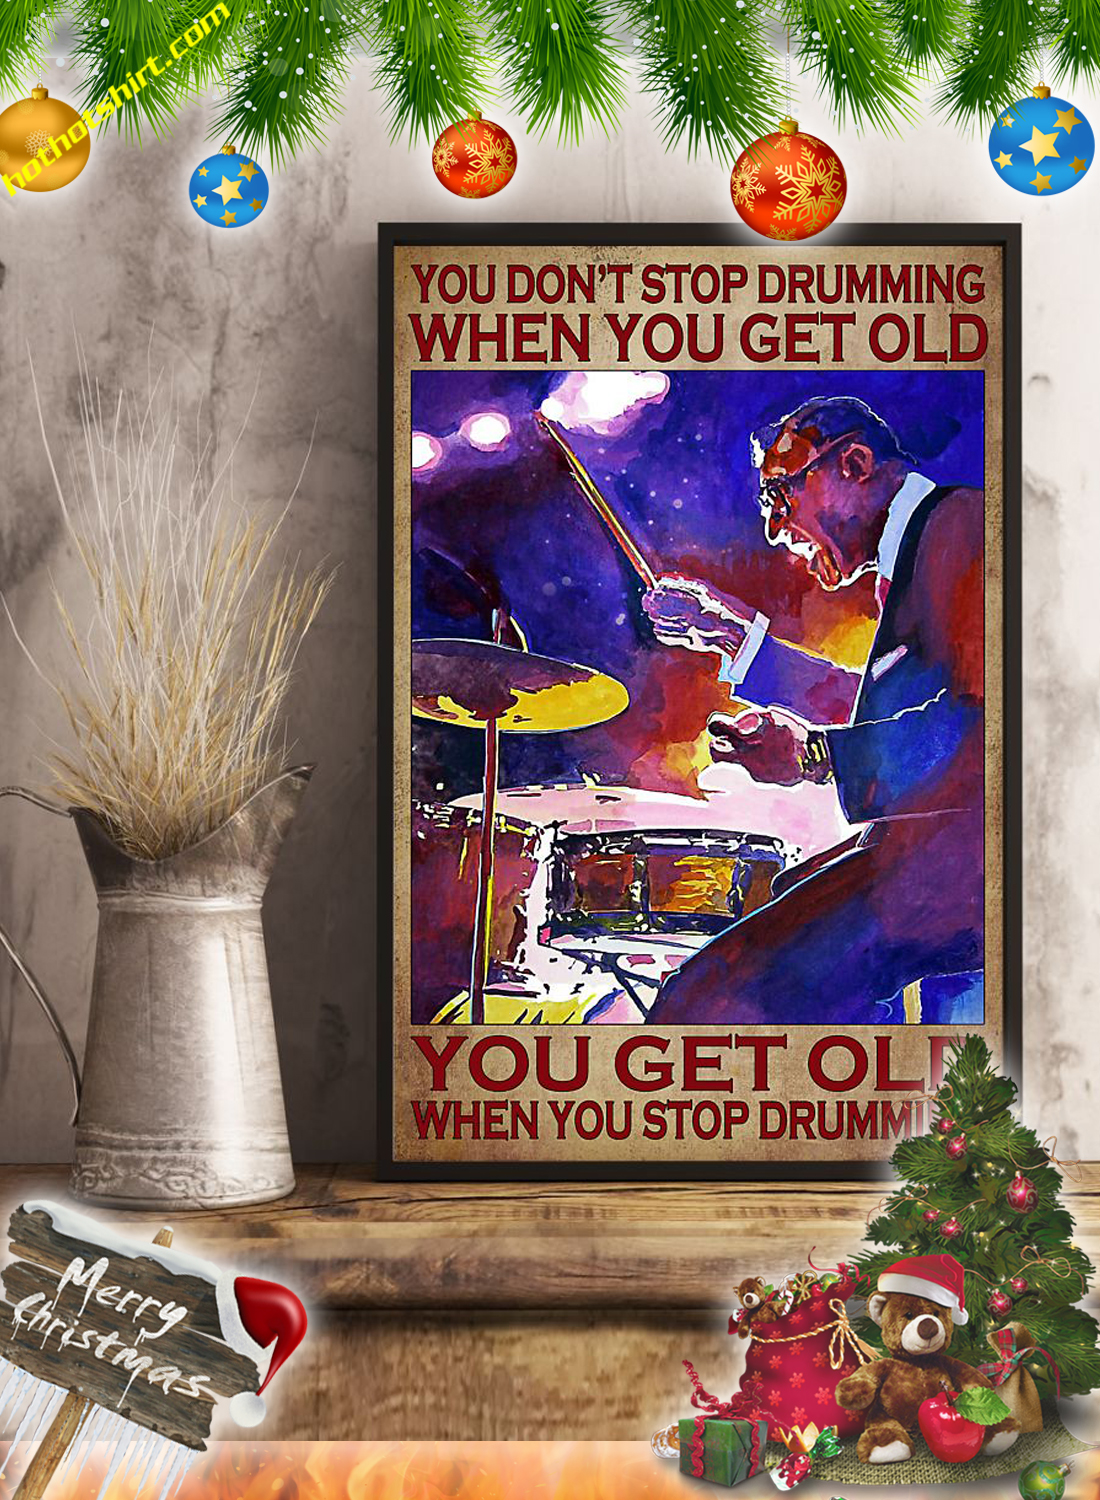 You don't stop drumming when you get old poster 2